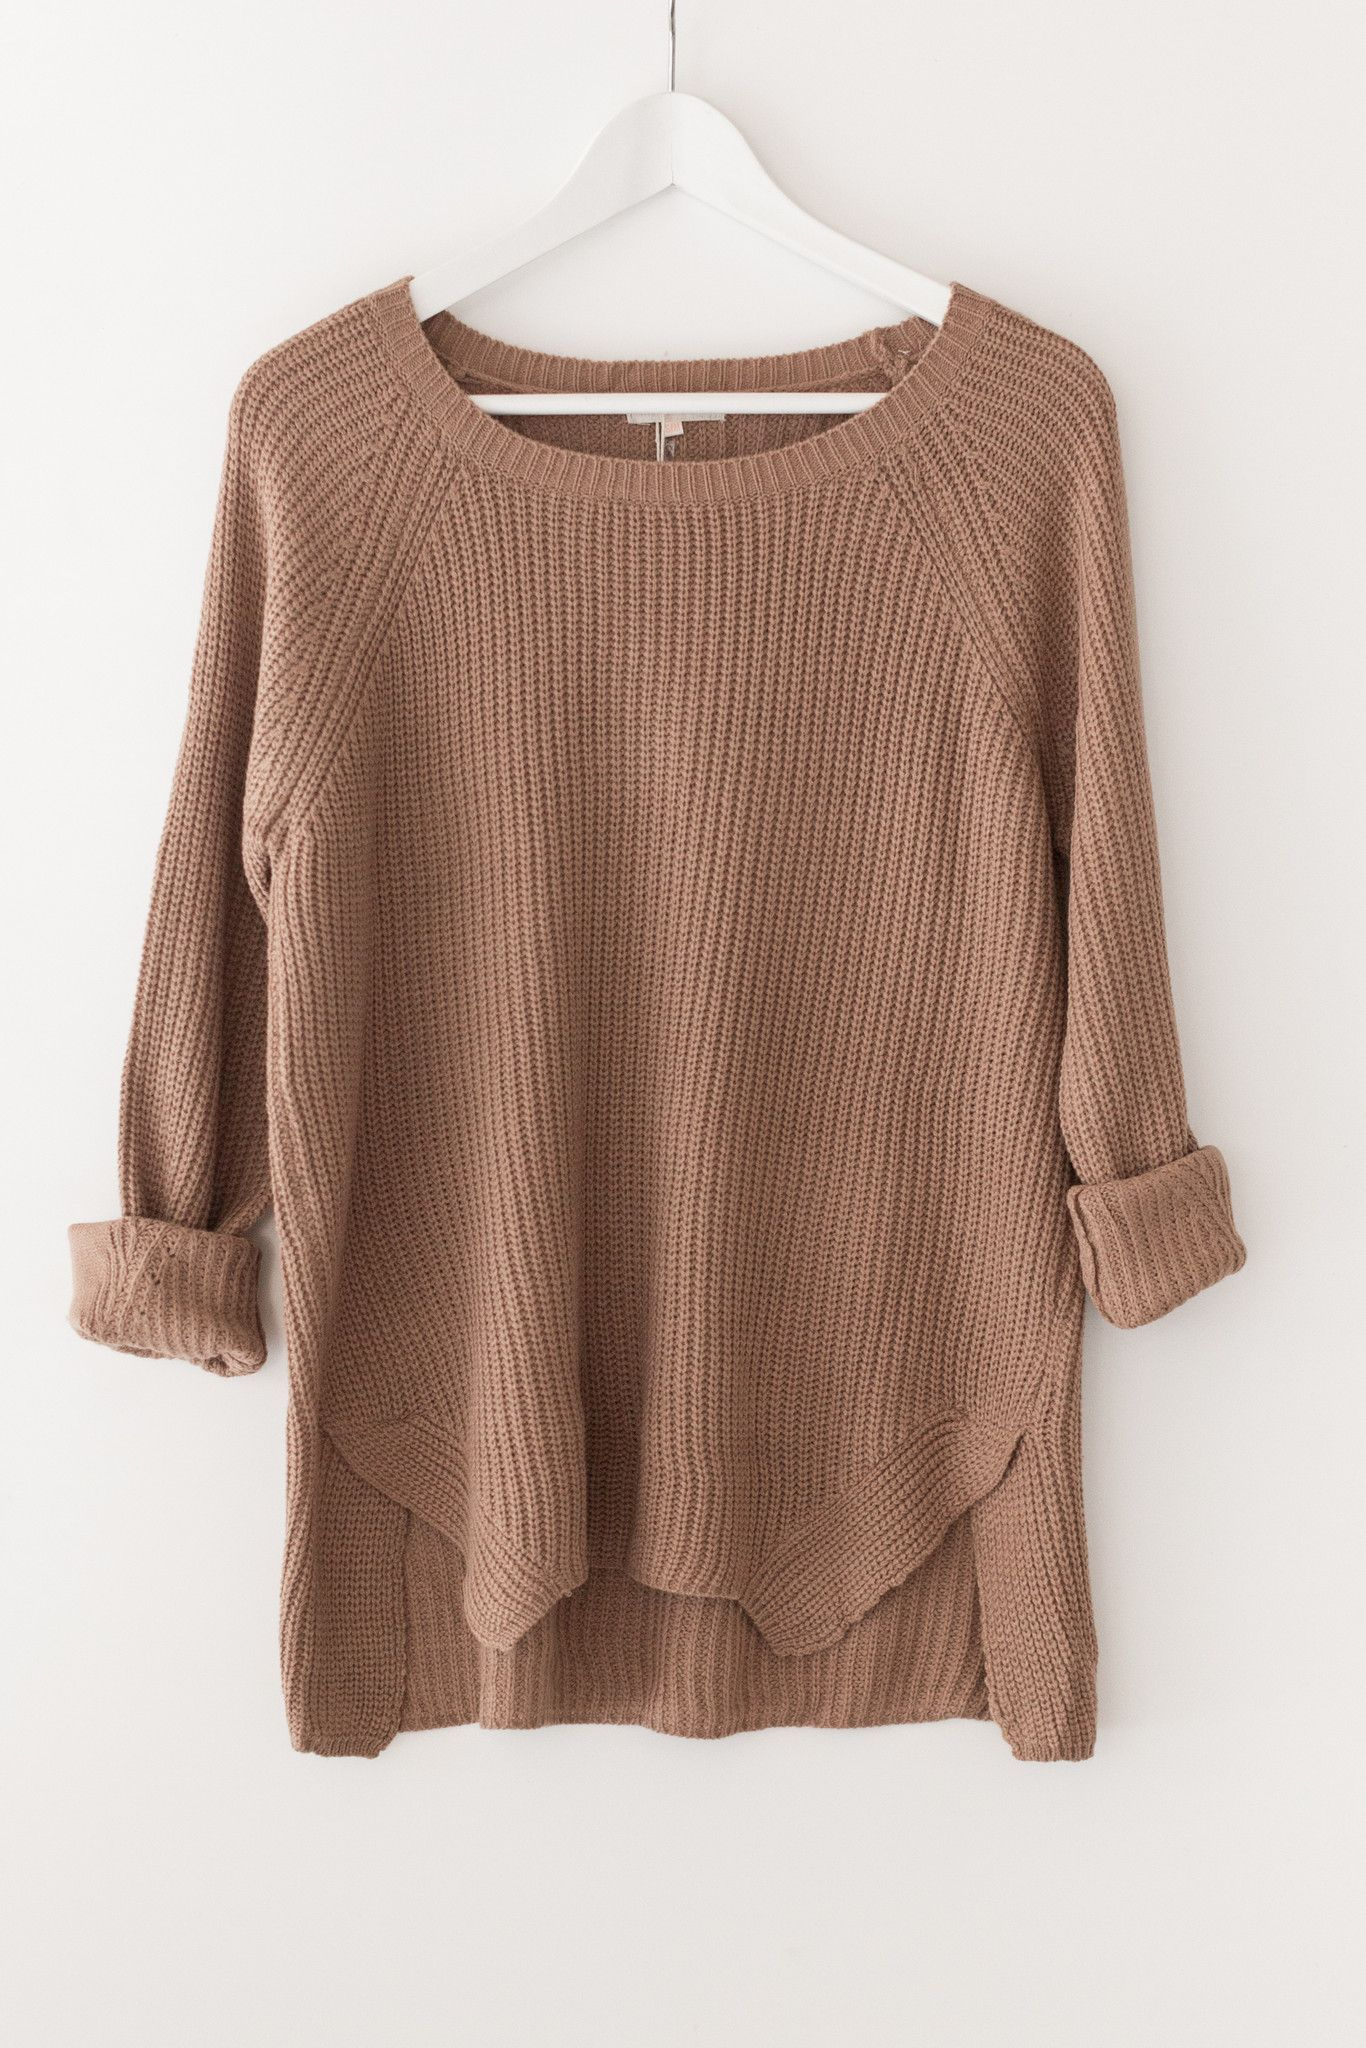 33d2b989ead2 Classic chunky knit sweater - Round neckline - Long sleeves - Side slits - Loose  fitting - 55% Cotton 45% Acrylic - Imported